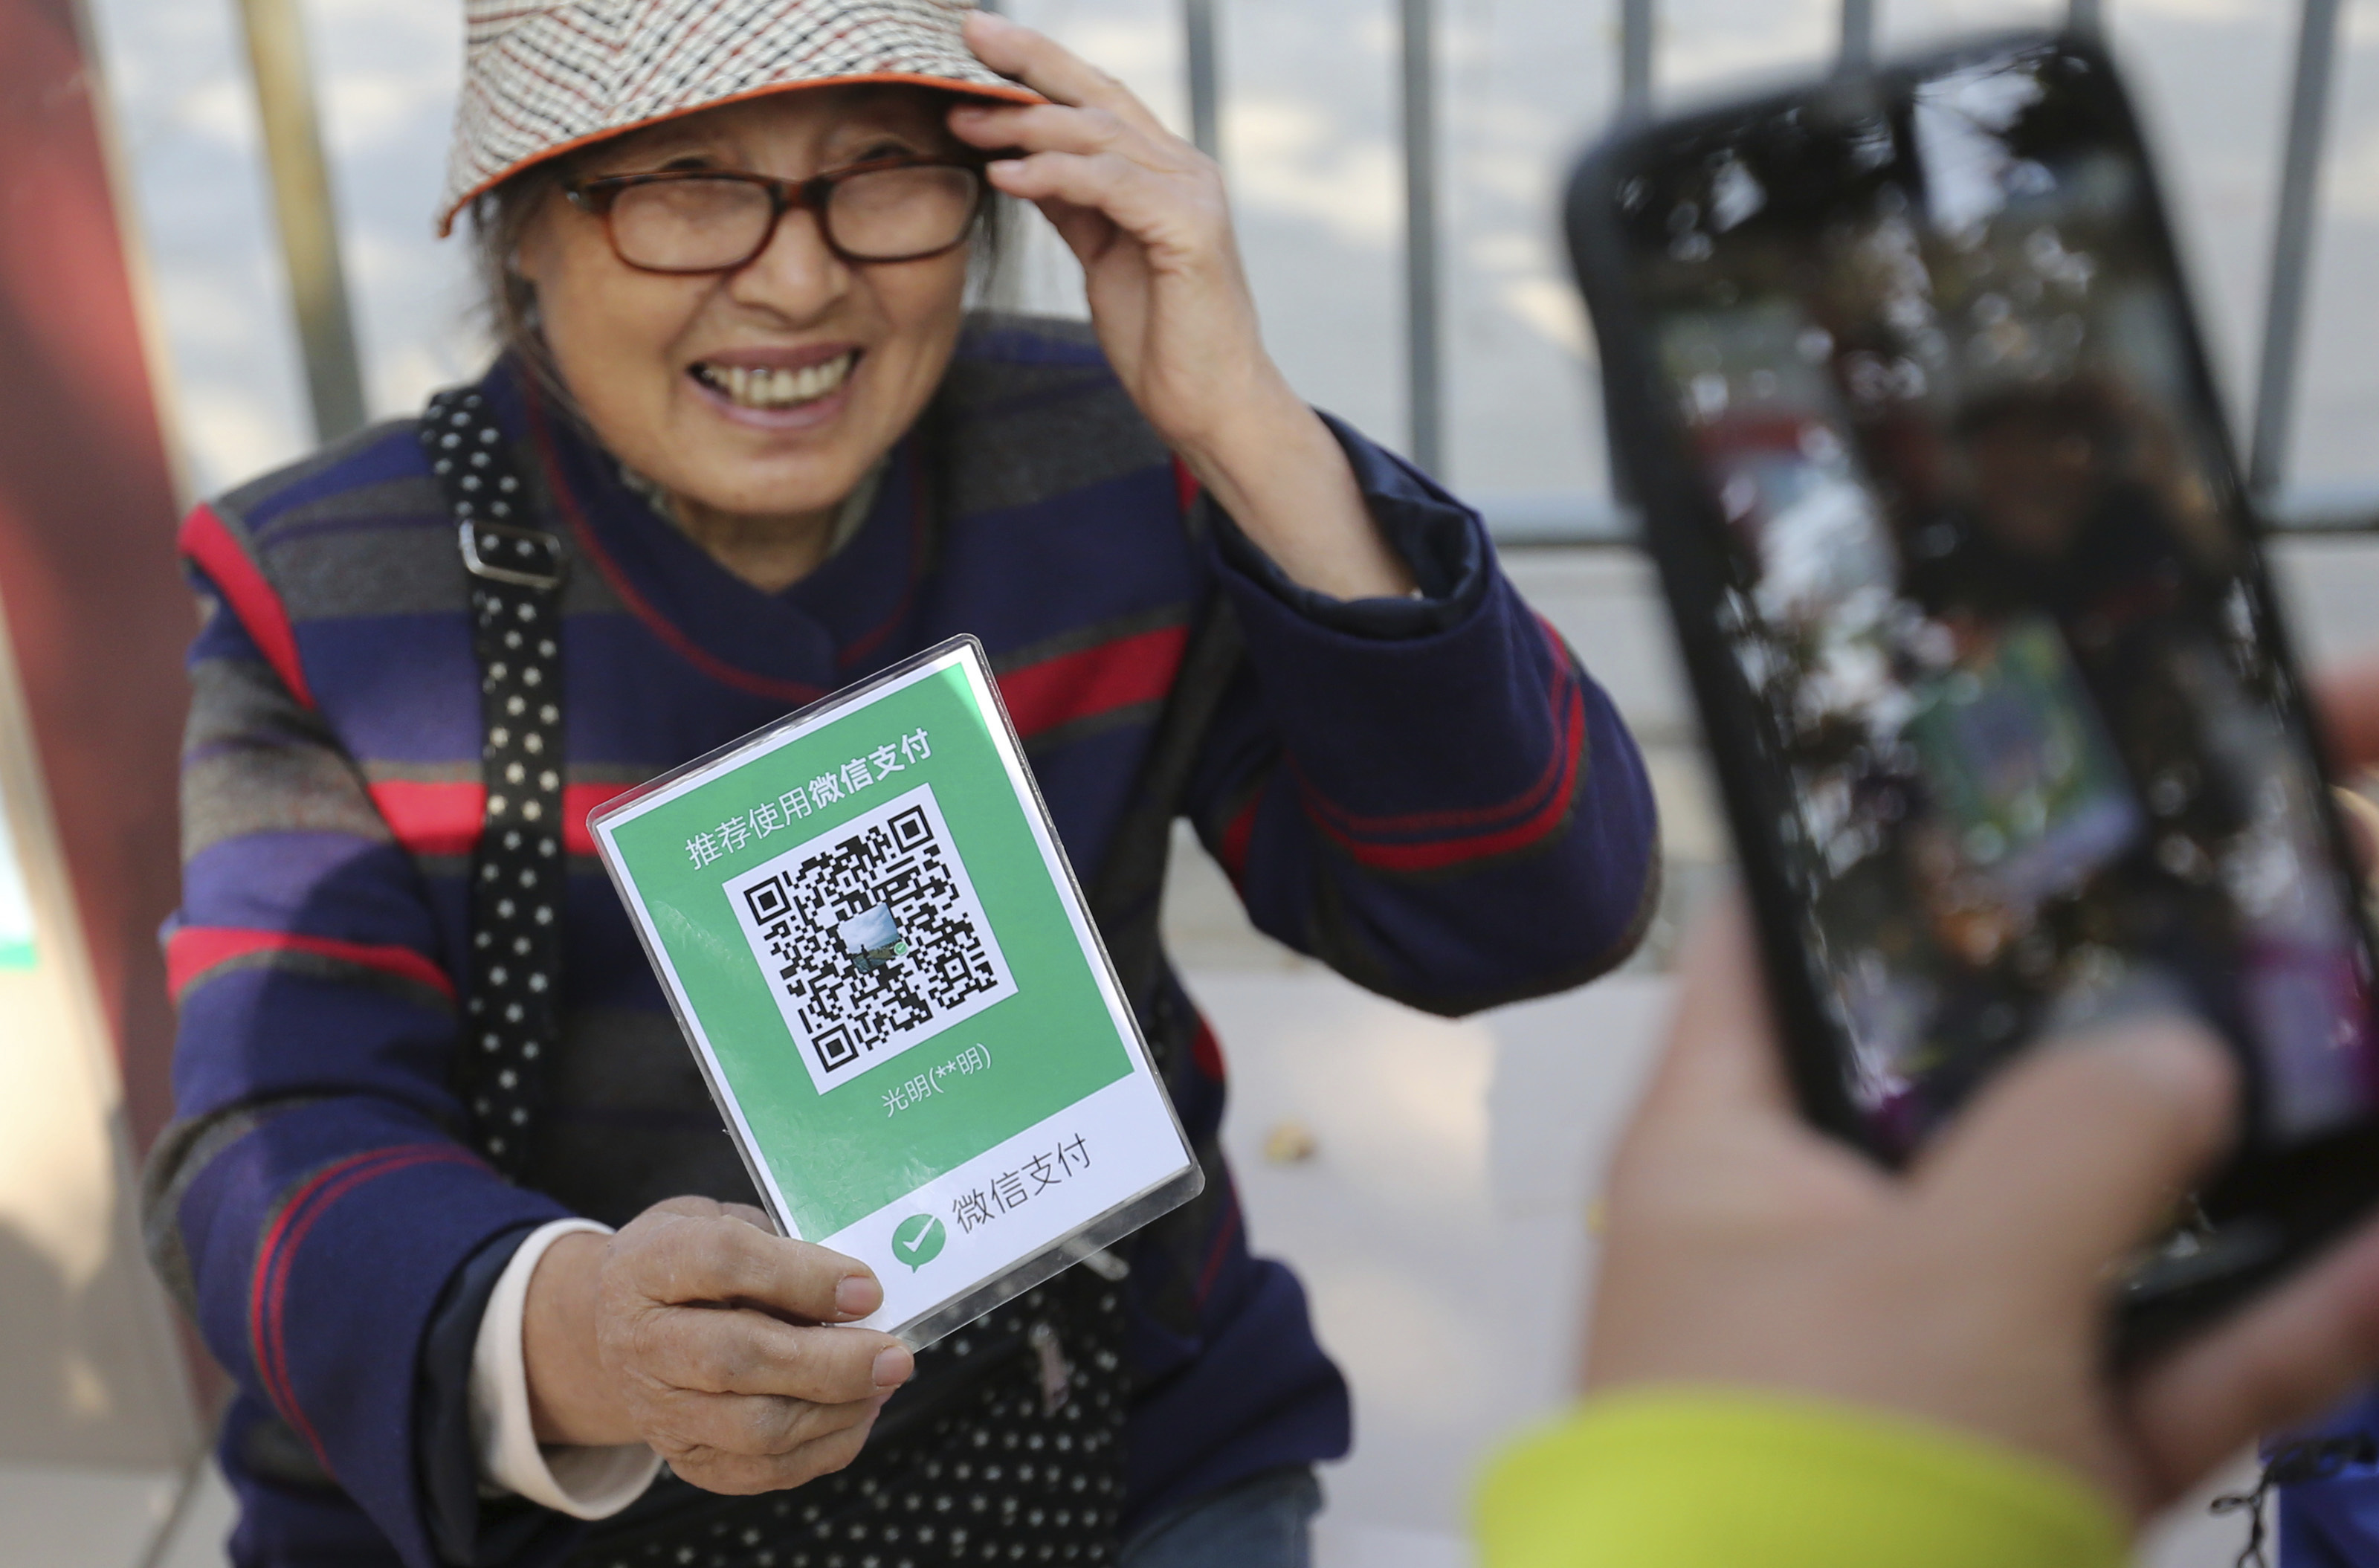 A local resident uses her smartphone to have the QR code scanned through the mobile app of Tencent's WeChat Payment function to pay her purchase.